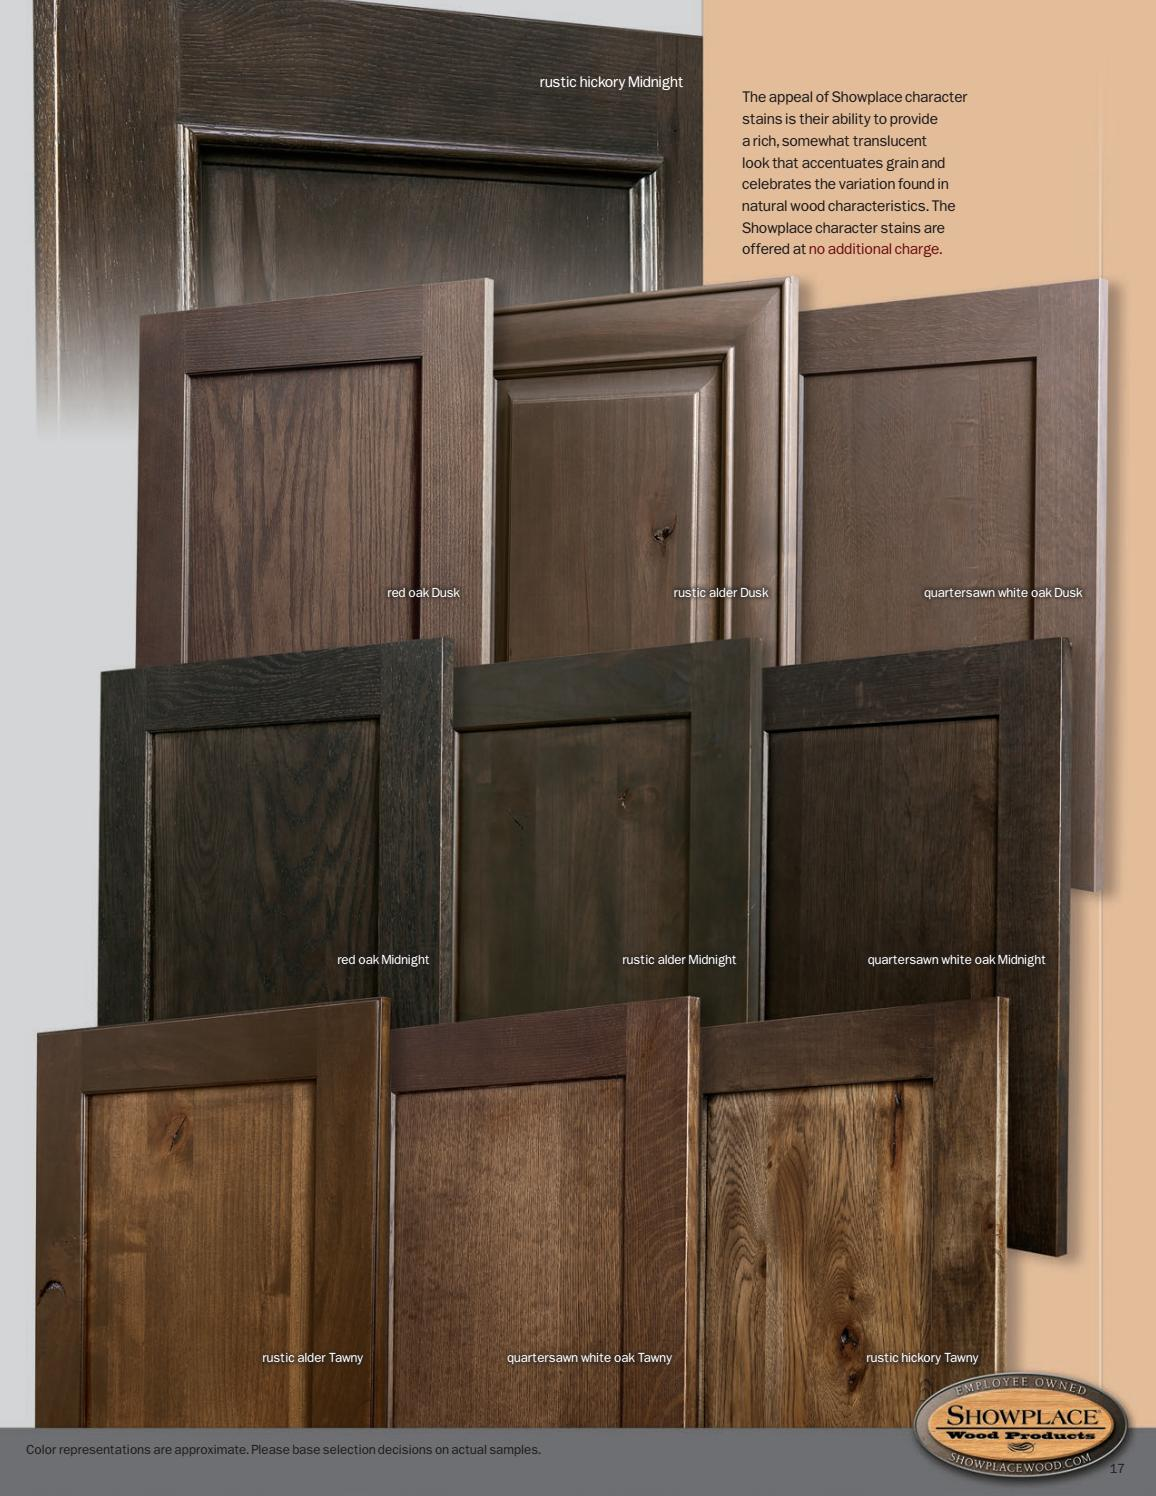 Showplace Kitchen Cabinets Showplace Cabinetry Styles Woods And Finishes Booklet By